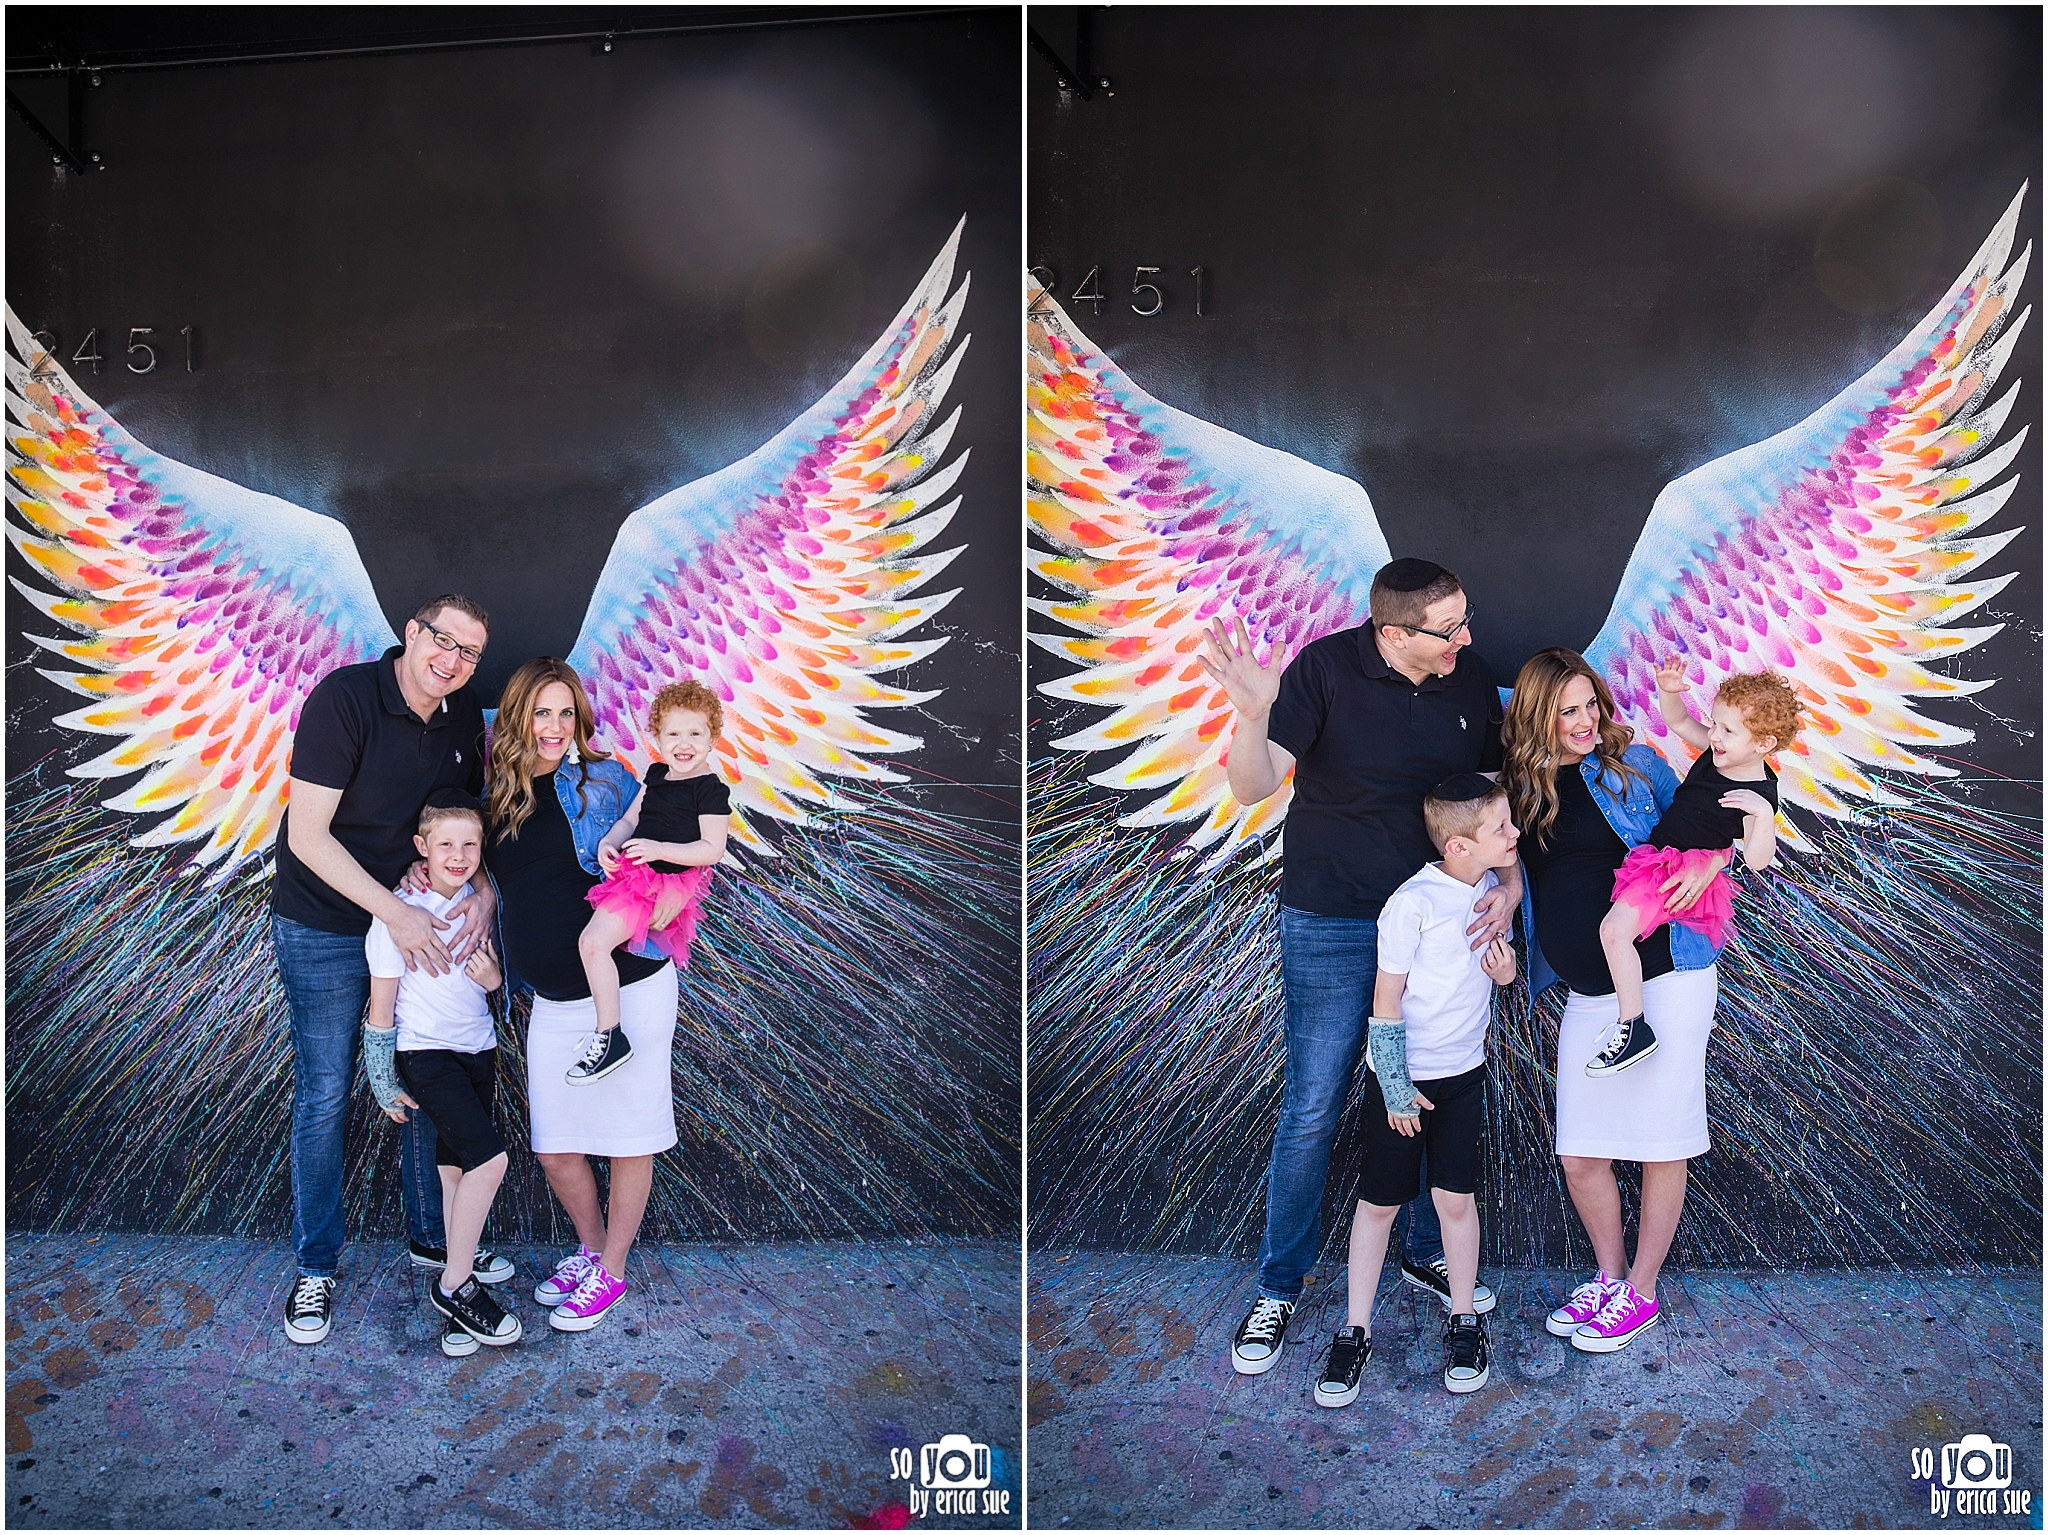 wynwood-family-photography-so-you-by-erica-sue-ft-lauderdale-davie-miami-fl-florida-2711 (2).jpg